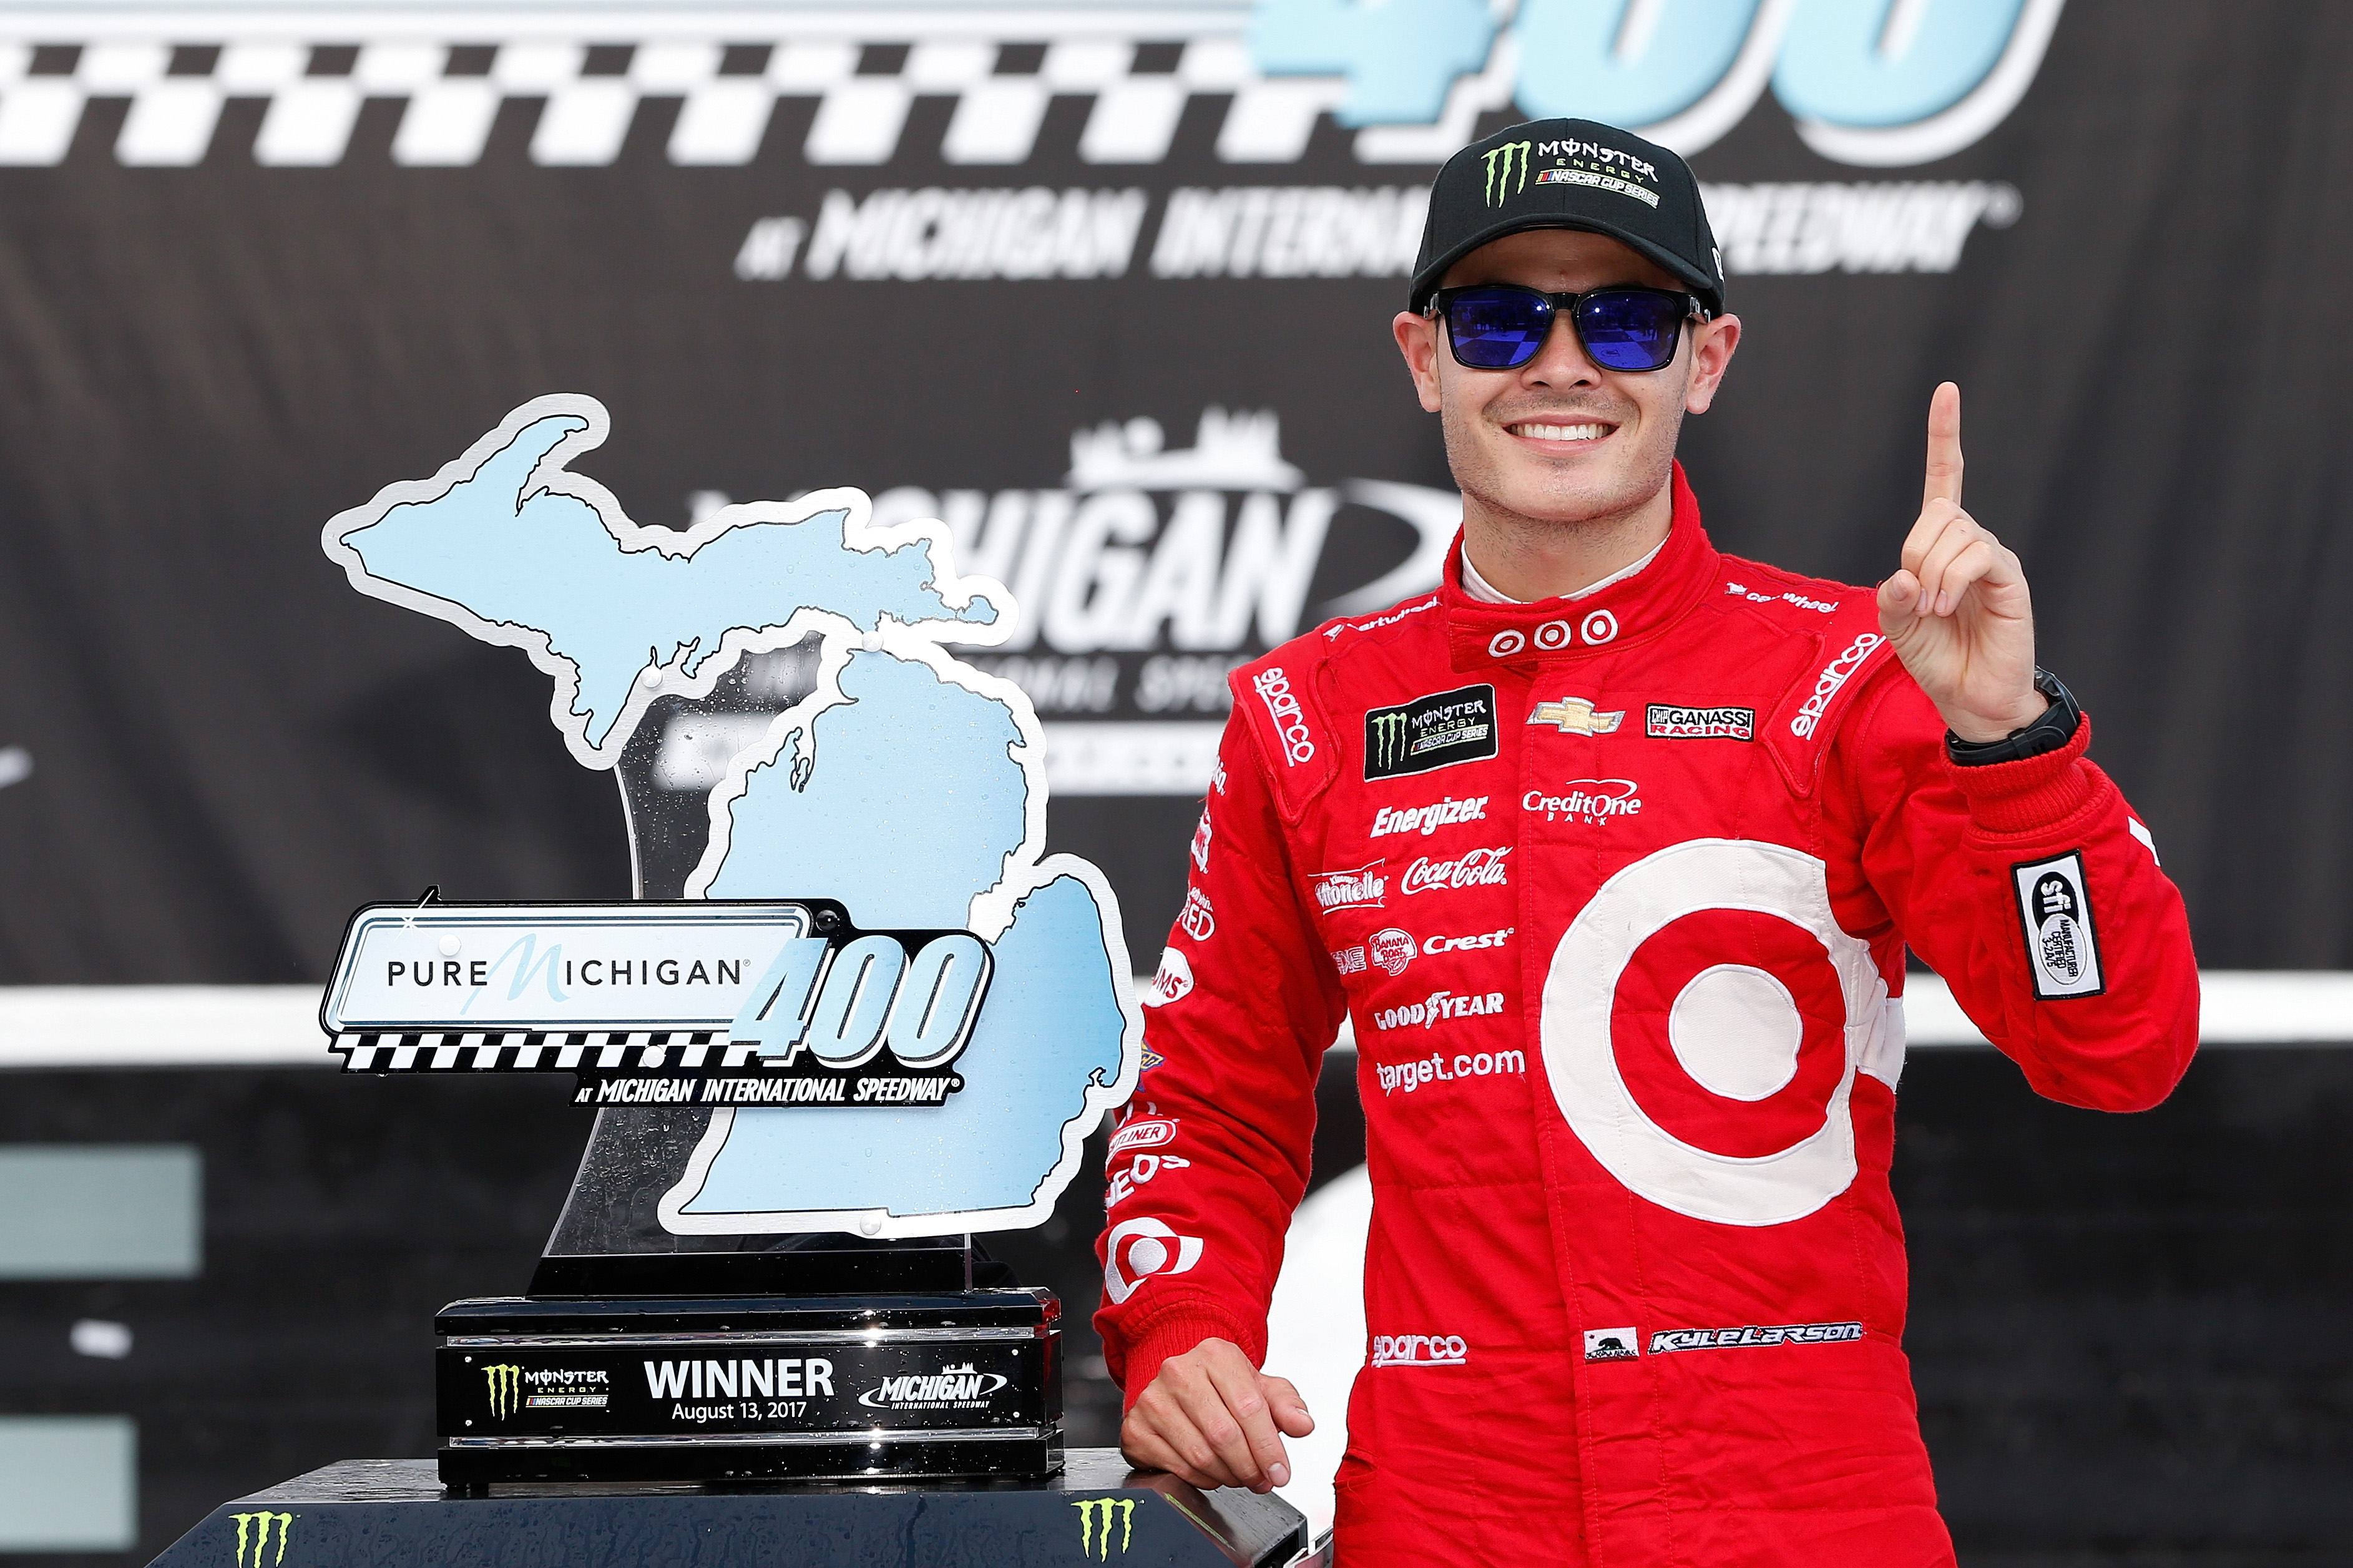 Larson Named to Forbes 2018 30 Under 30 List